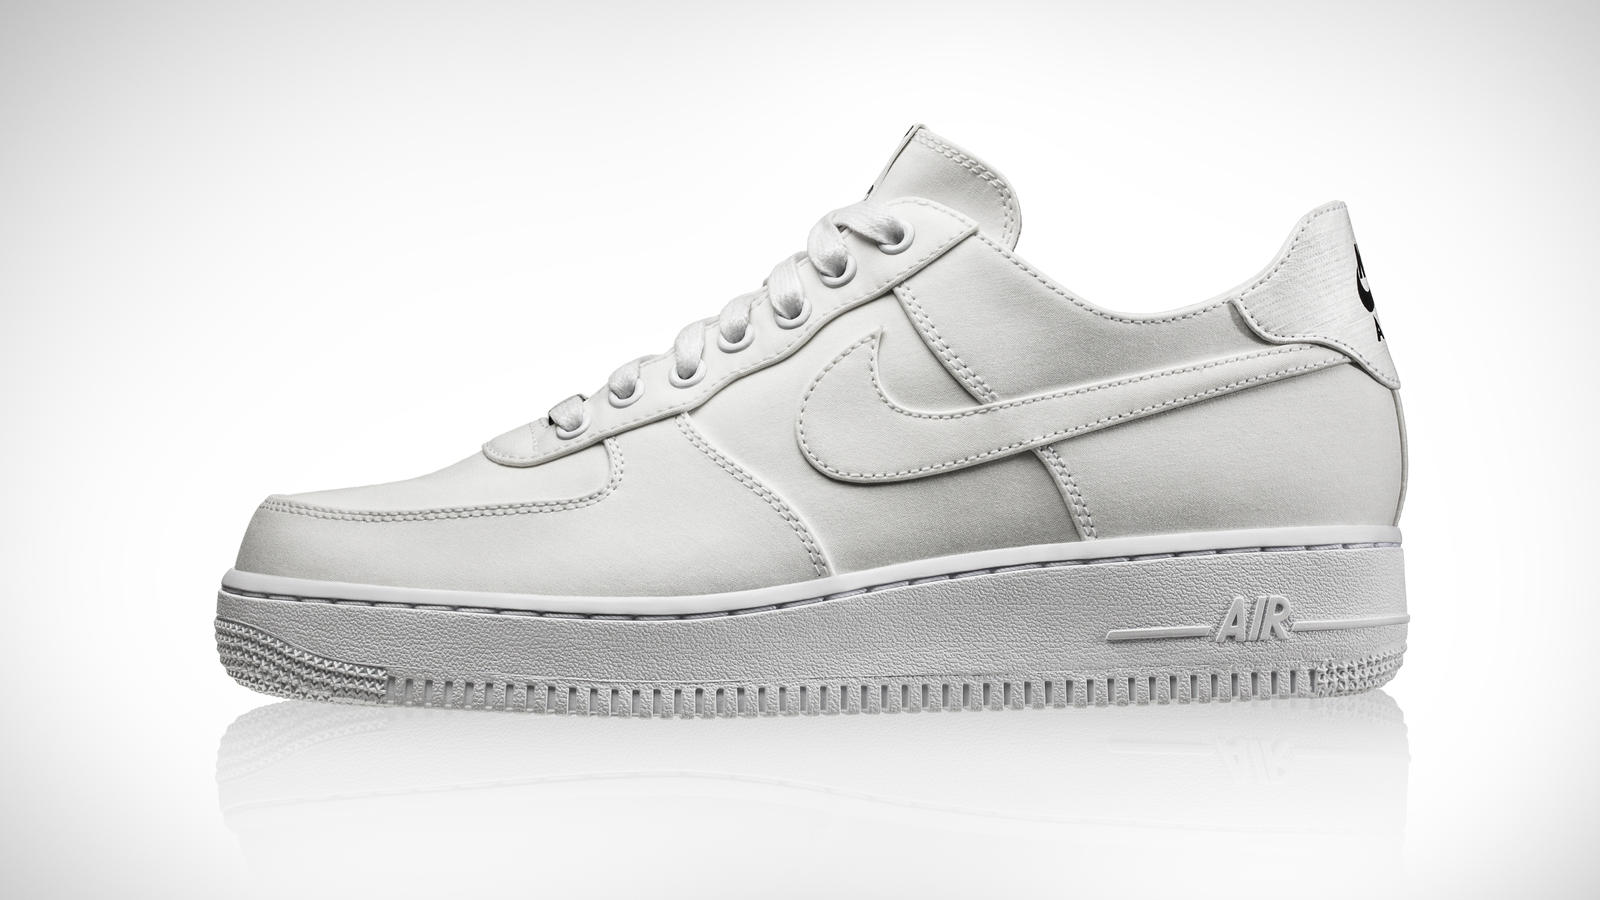 93bf9b8c5ca Nike and Dover Street Market reinvent a classic - Nike News